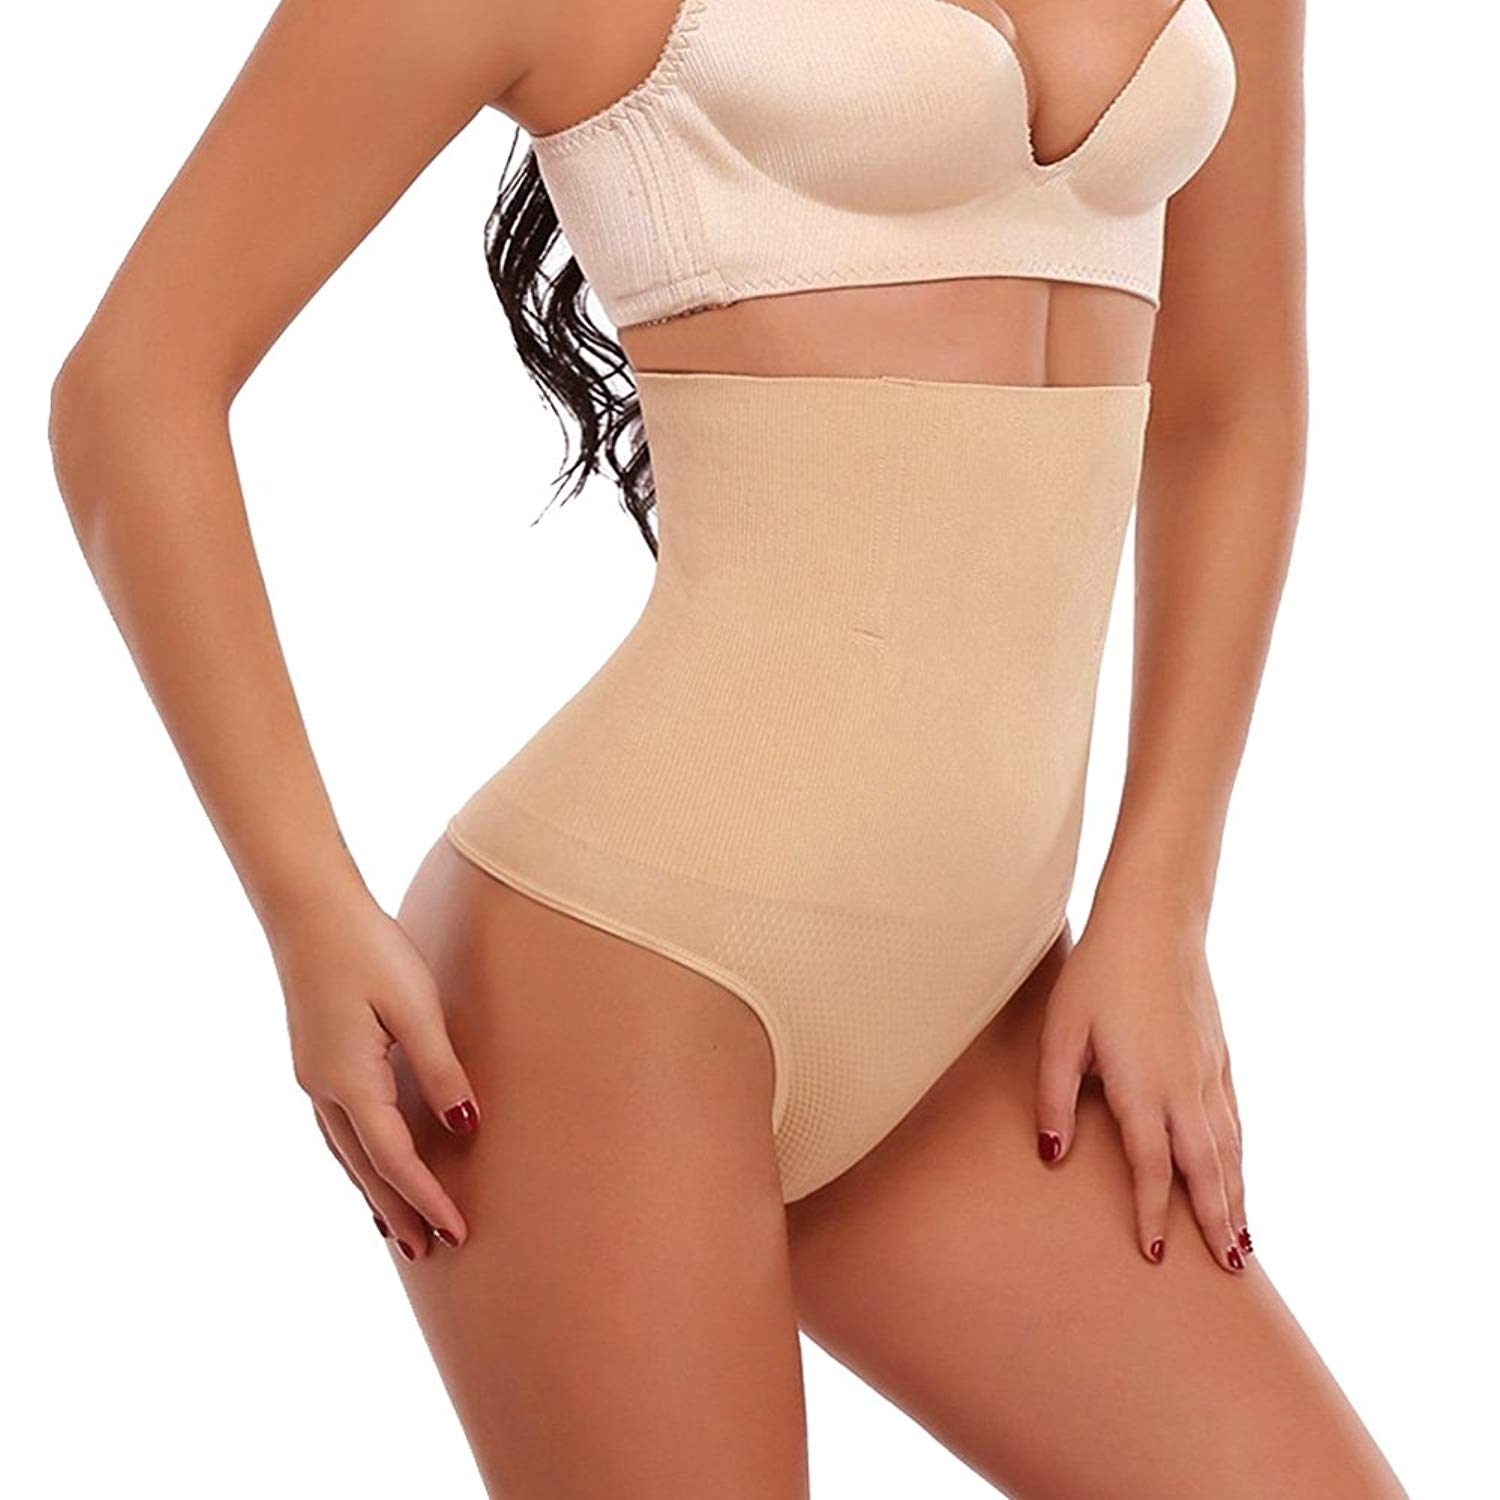 58f512f613097 Get Quotations · 3-5 Day Delivery High Waist Women s Thong Shapewear Butt  Lifter Tummy Control Panty